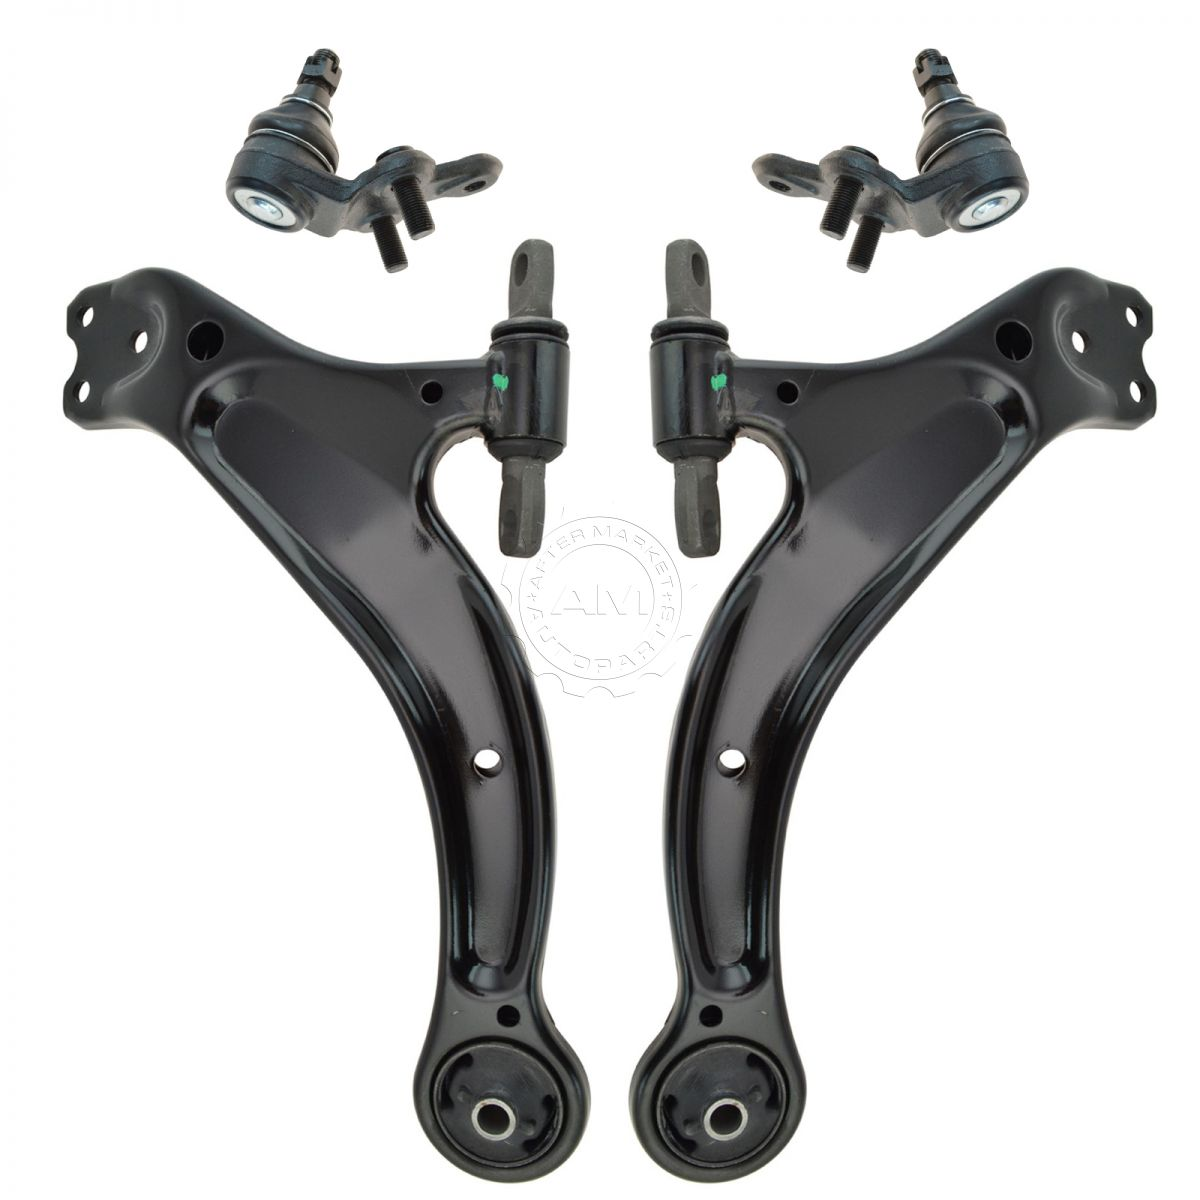 PartsW 2 Pc New Suspension for TOYOTA AVALON TOYOTA SOLARA TOYOTA SIENNA Lower Control Arm with Ball Joints /& Bushing Passenger /& Driver Side Kit